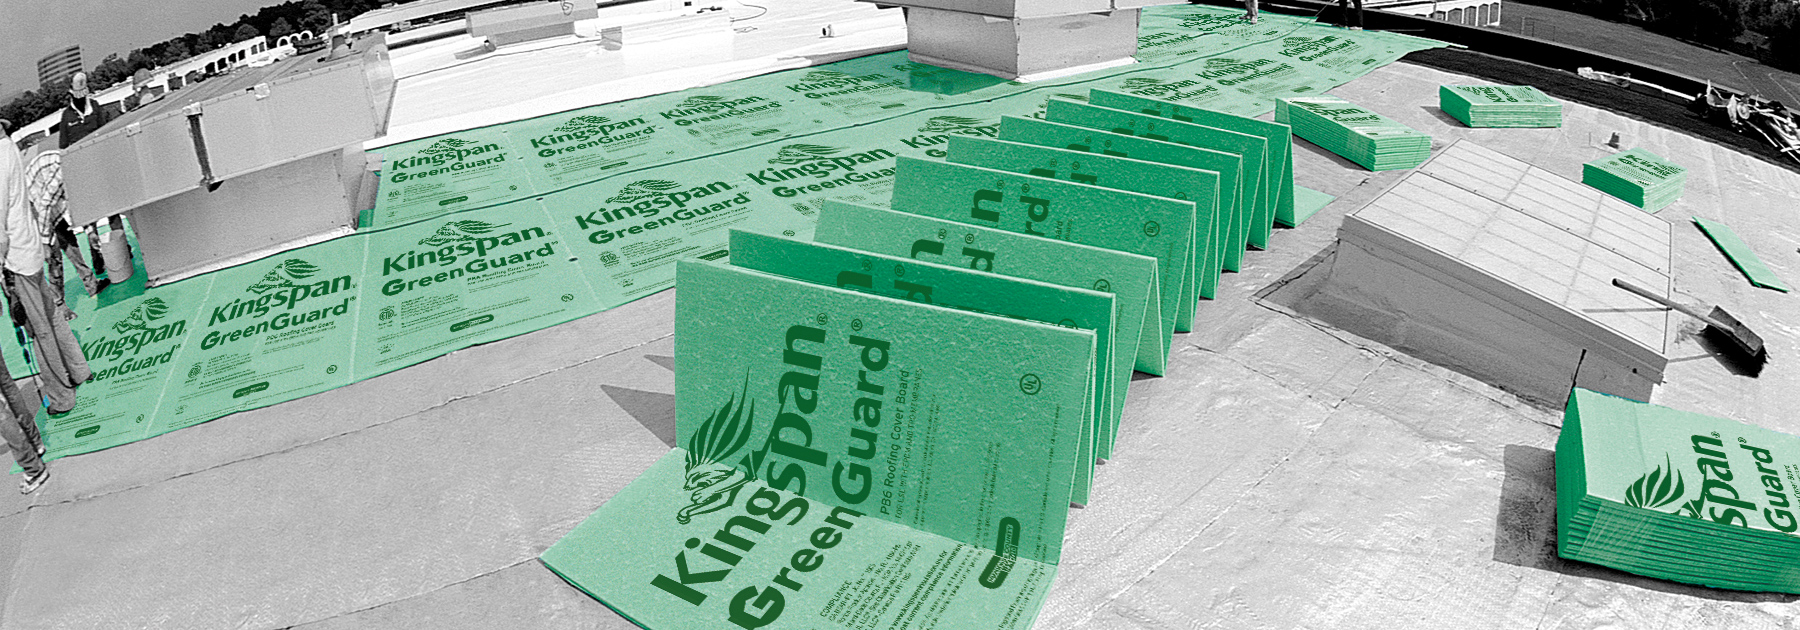 GreenGuard-Roofing-Cover-Board_PB6-US